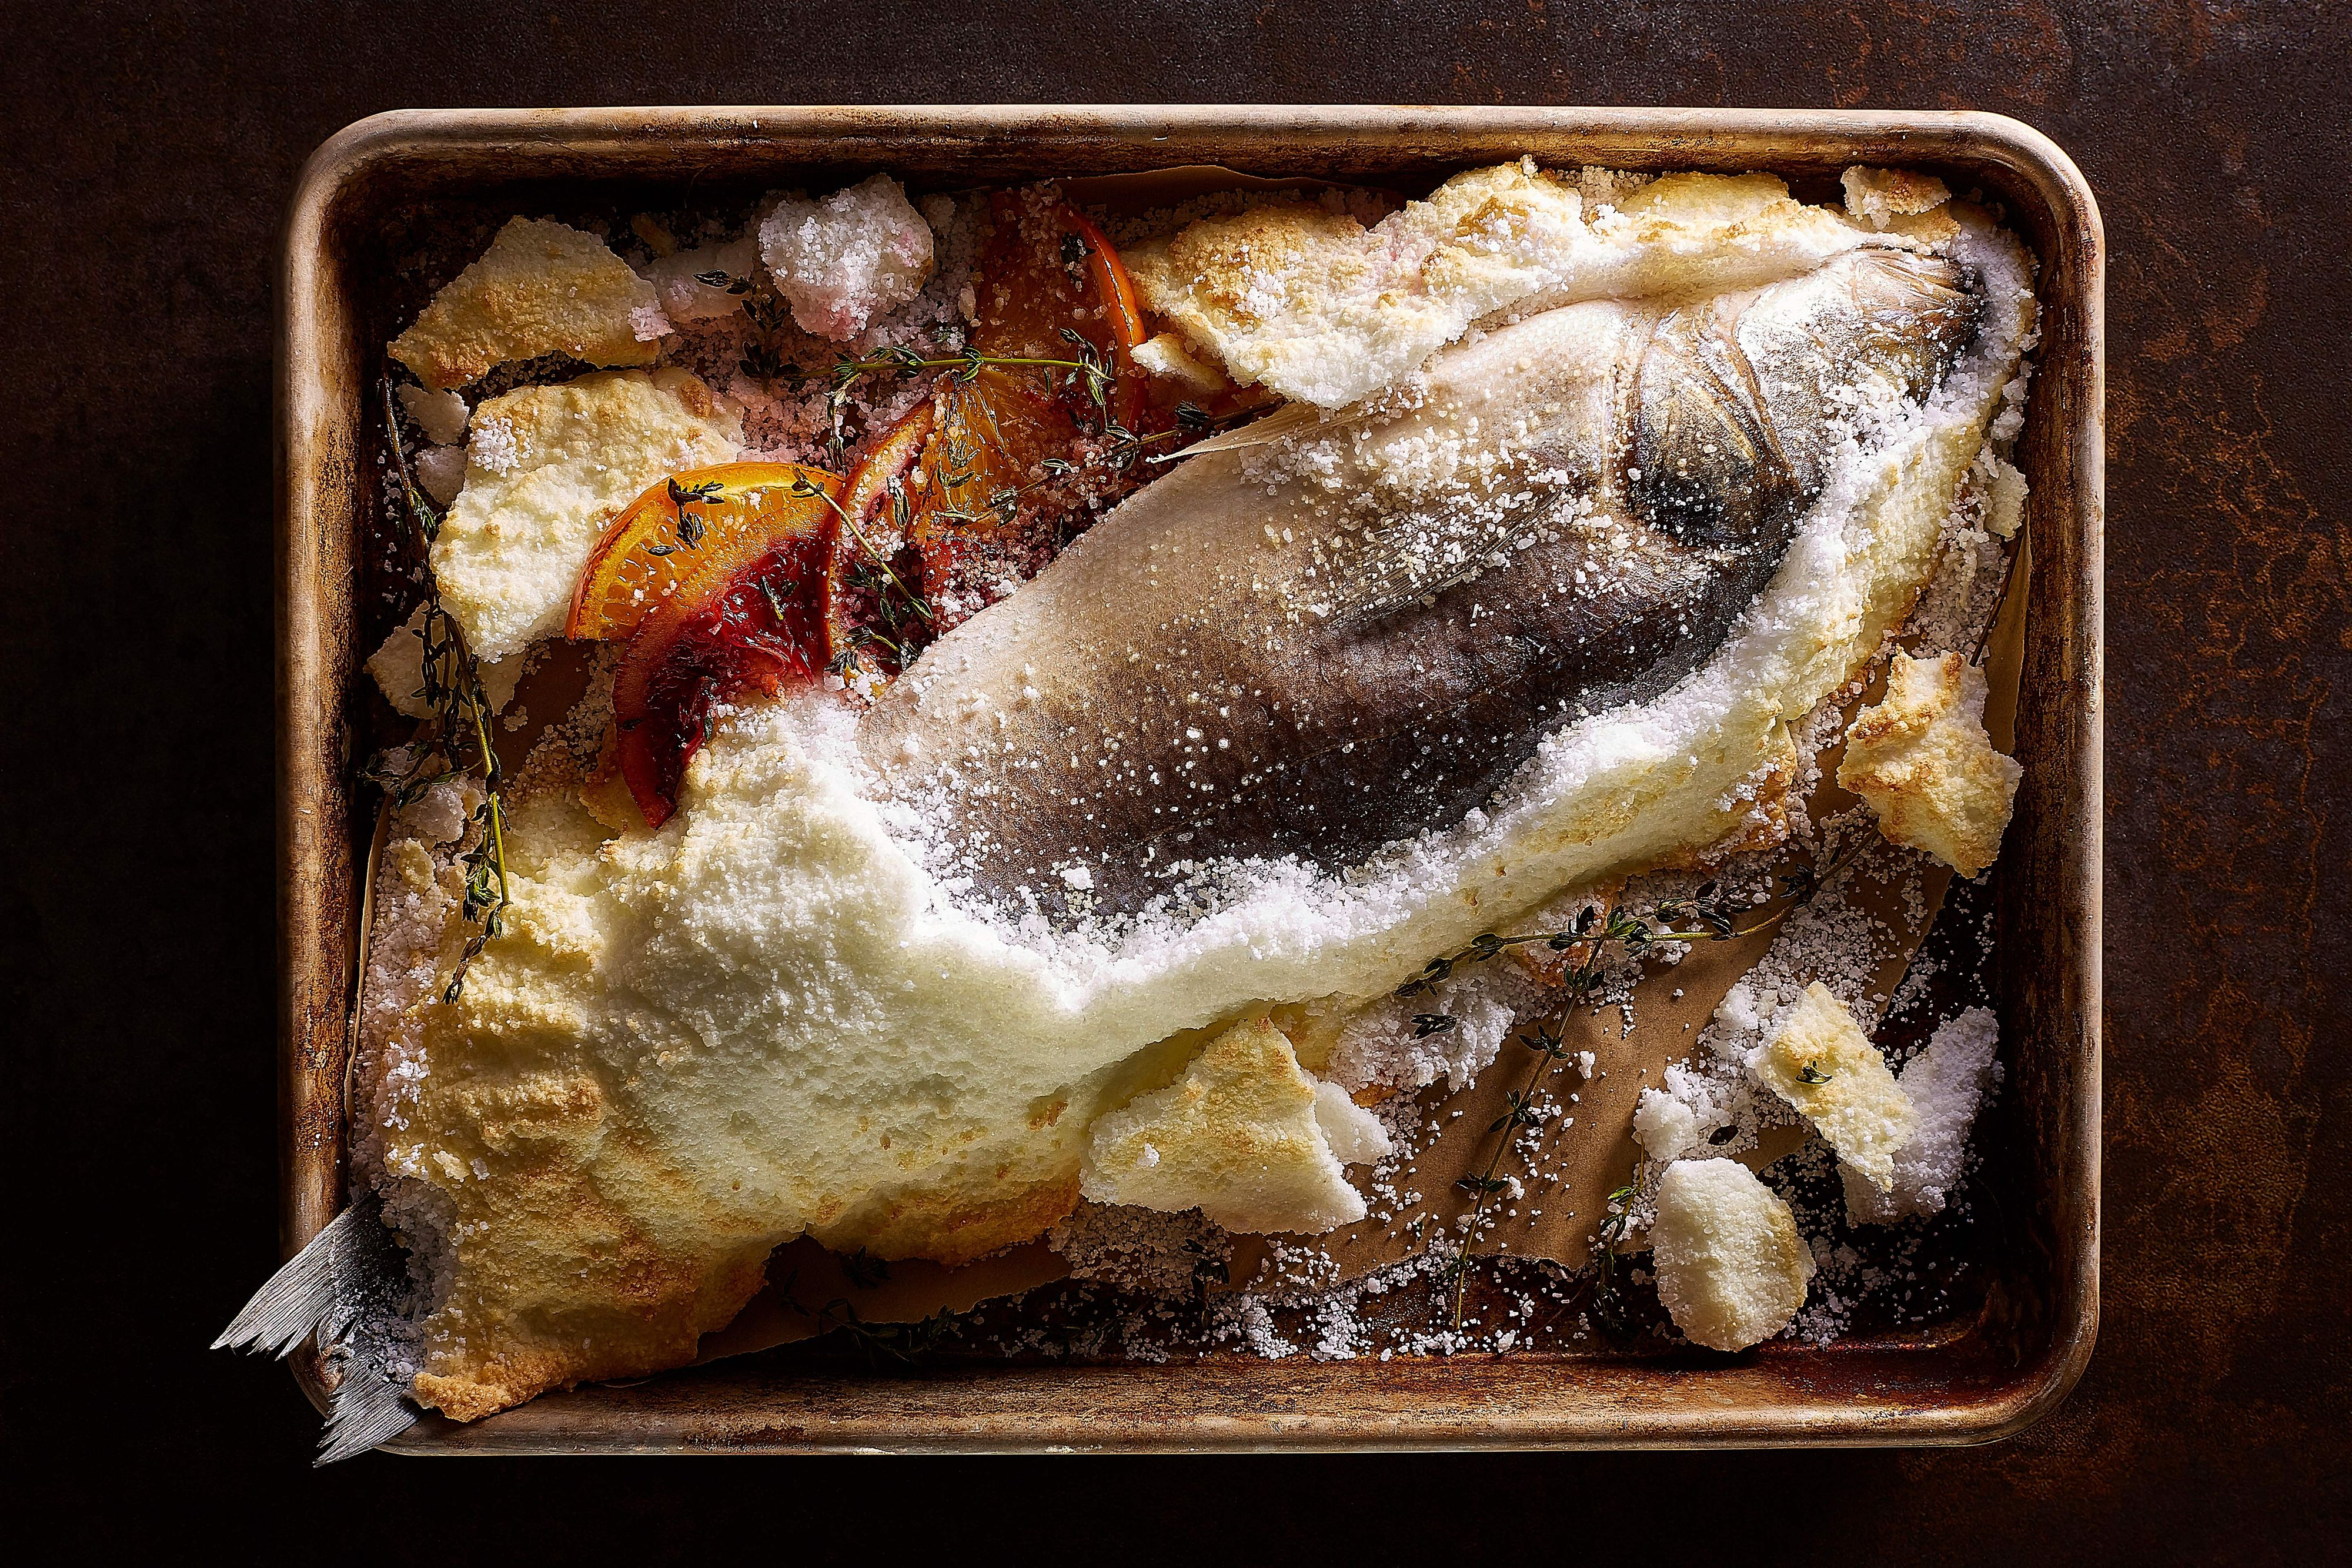 Saltimboca-Whole-Branzino-Megan_4_20180855.jpg